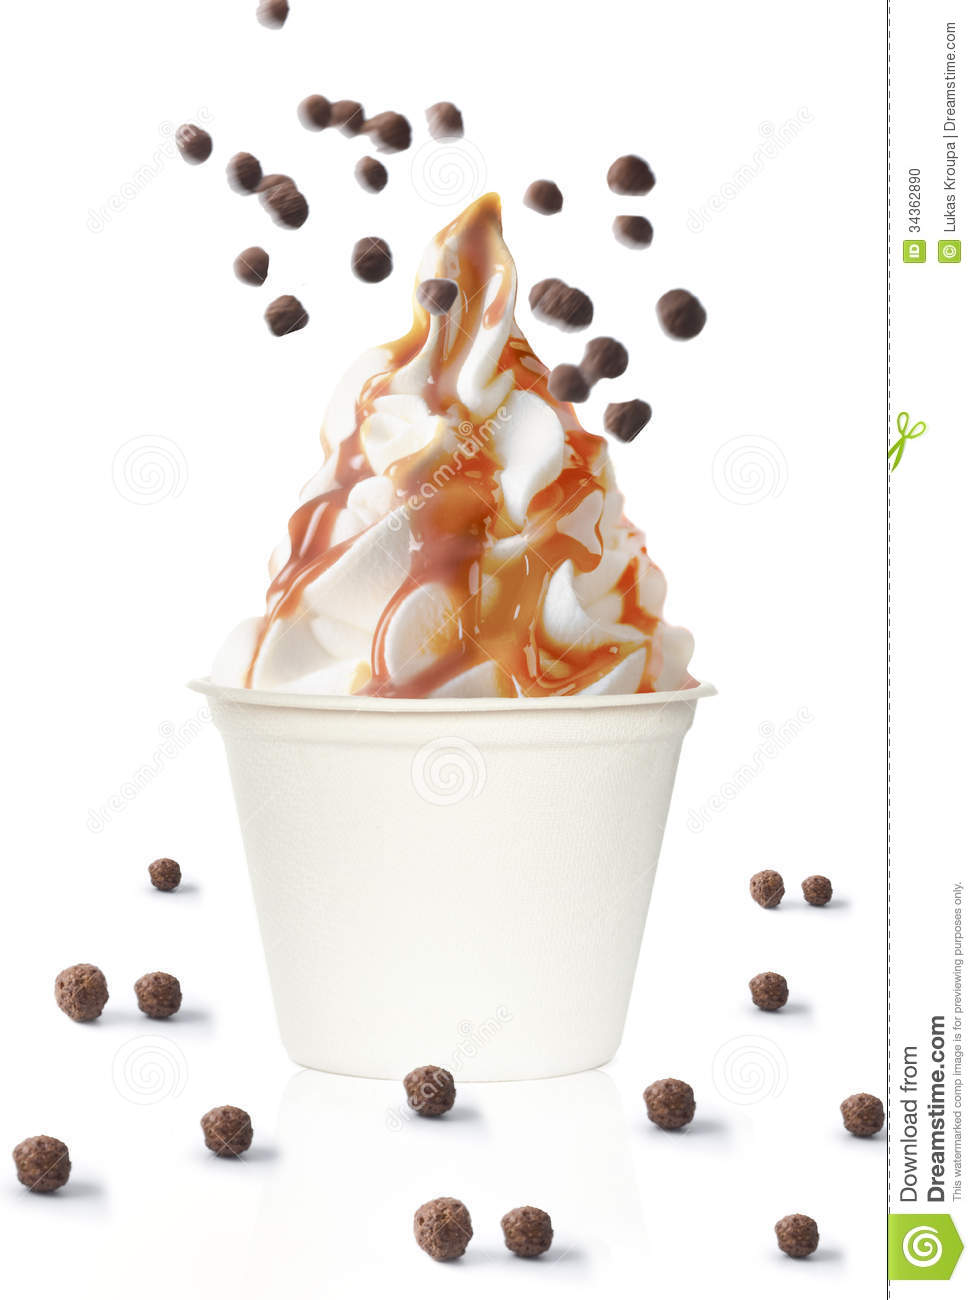 Ice cream sundae with caramel topping and chocolate balls.